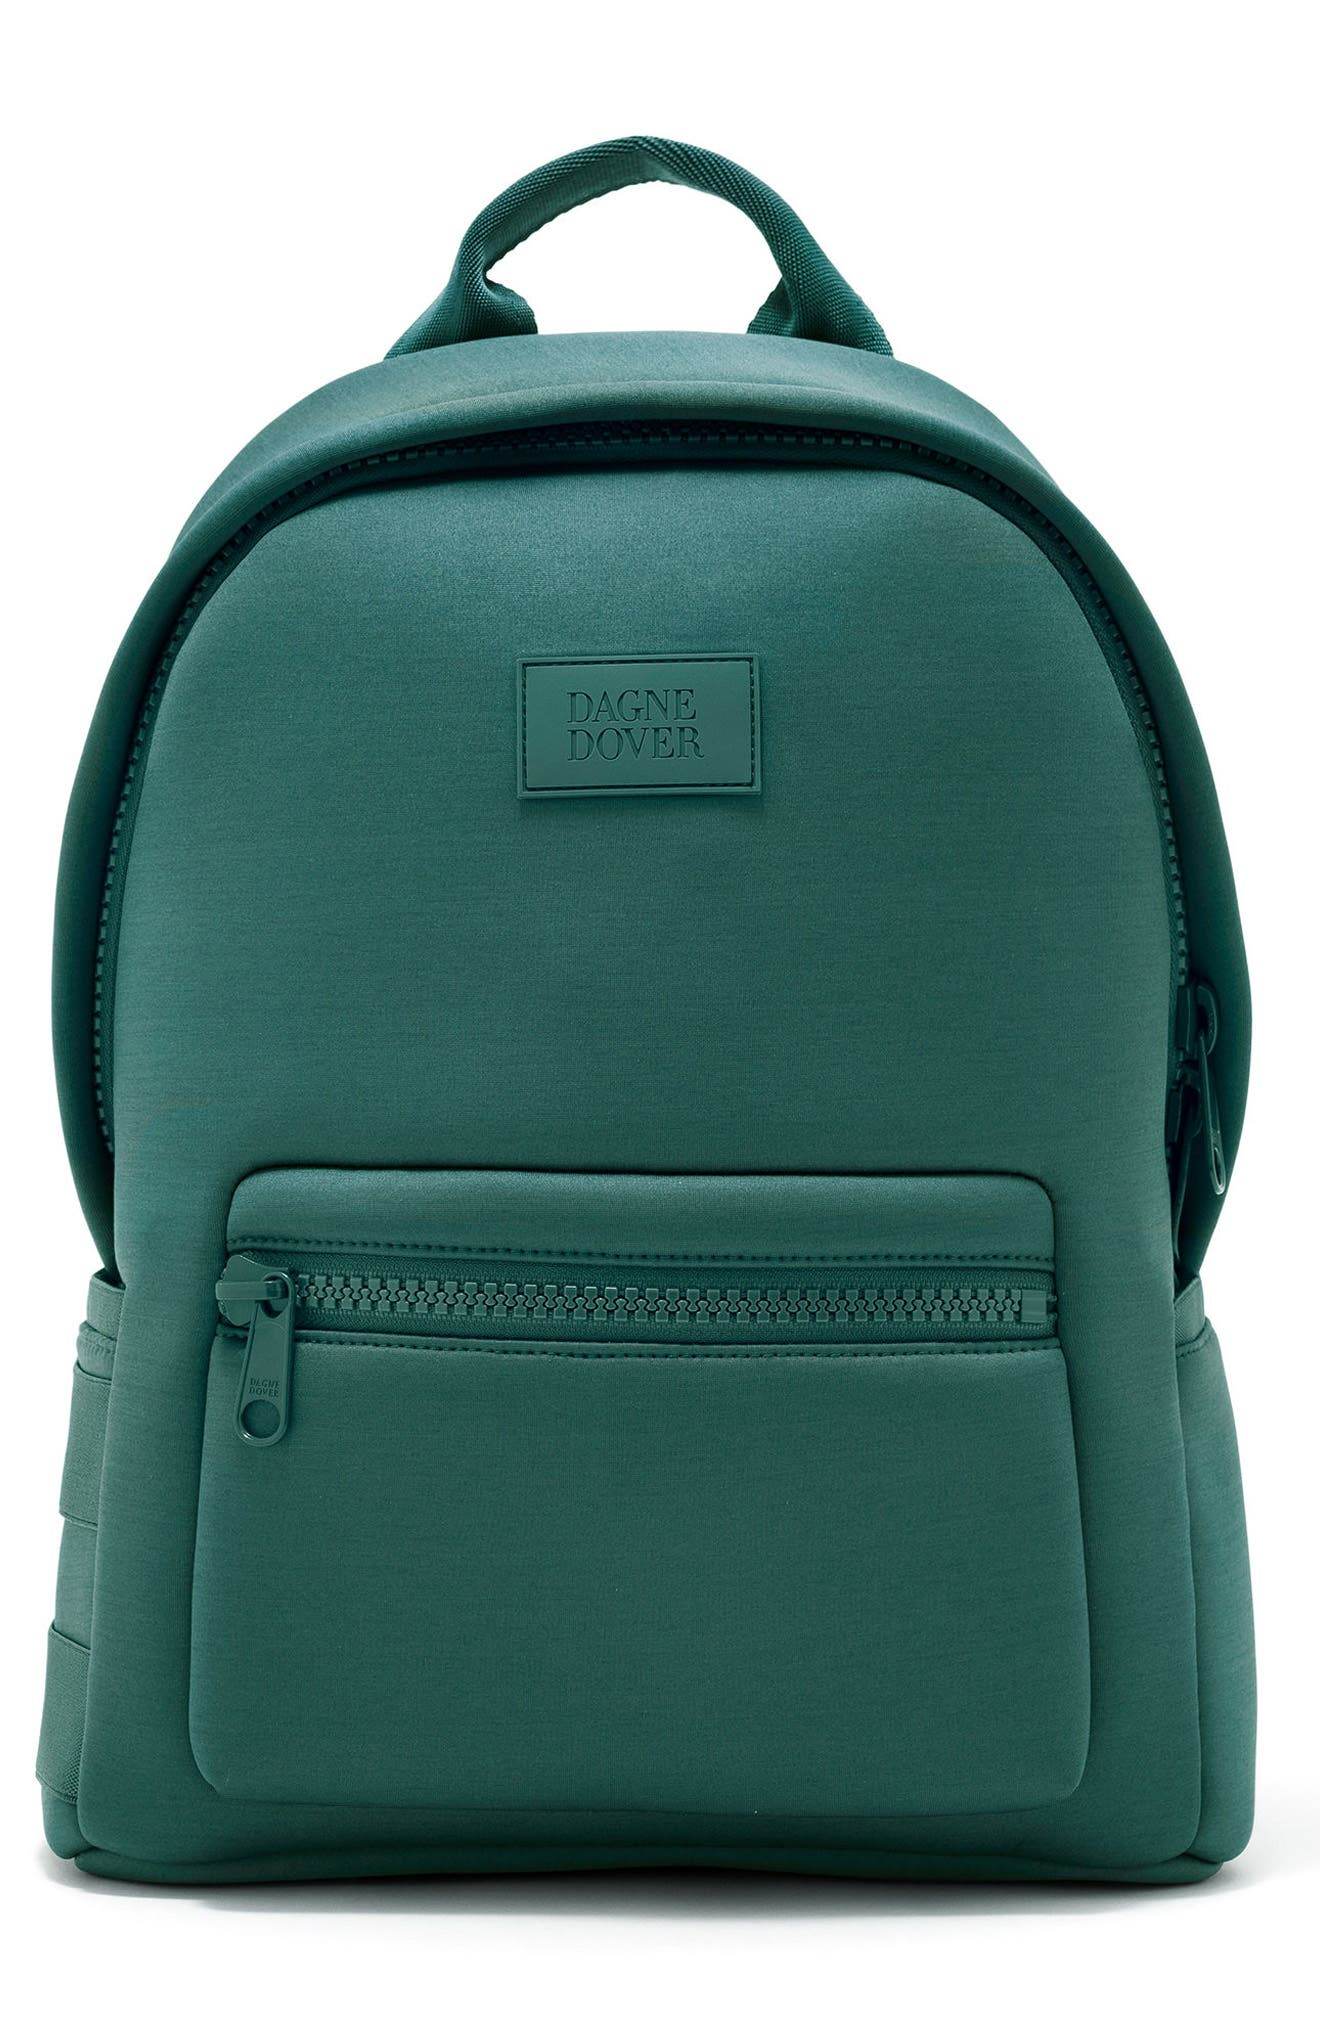 365 Dakota Neoprene Backpack,                             Main thumbnail 1, color,                             Palm